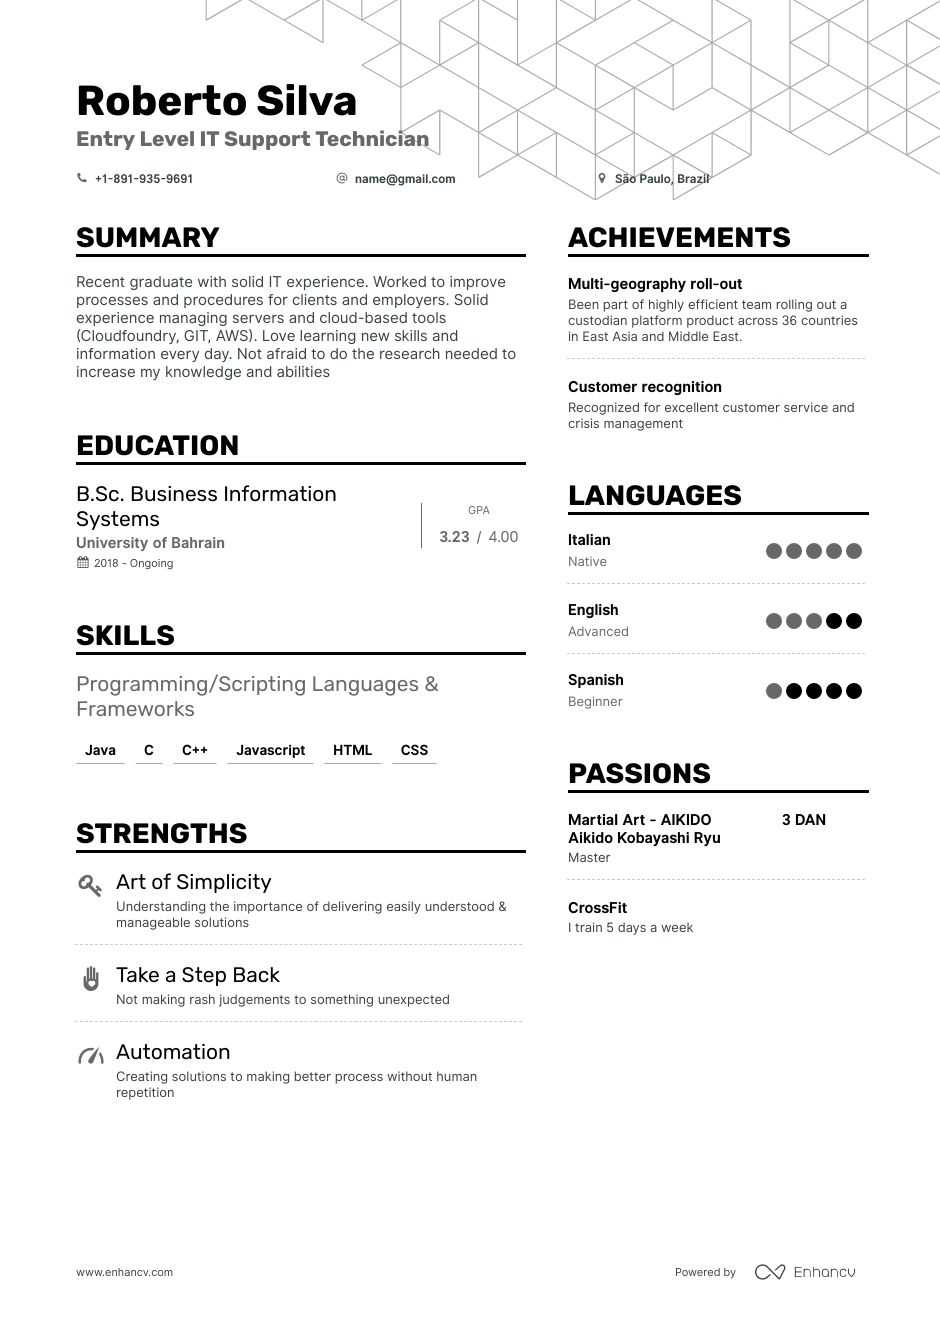 entry level it resume examples expert advice enhancv information technology oracle for Resume Entry Level Information Technology Resume Examples